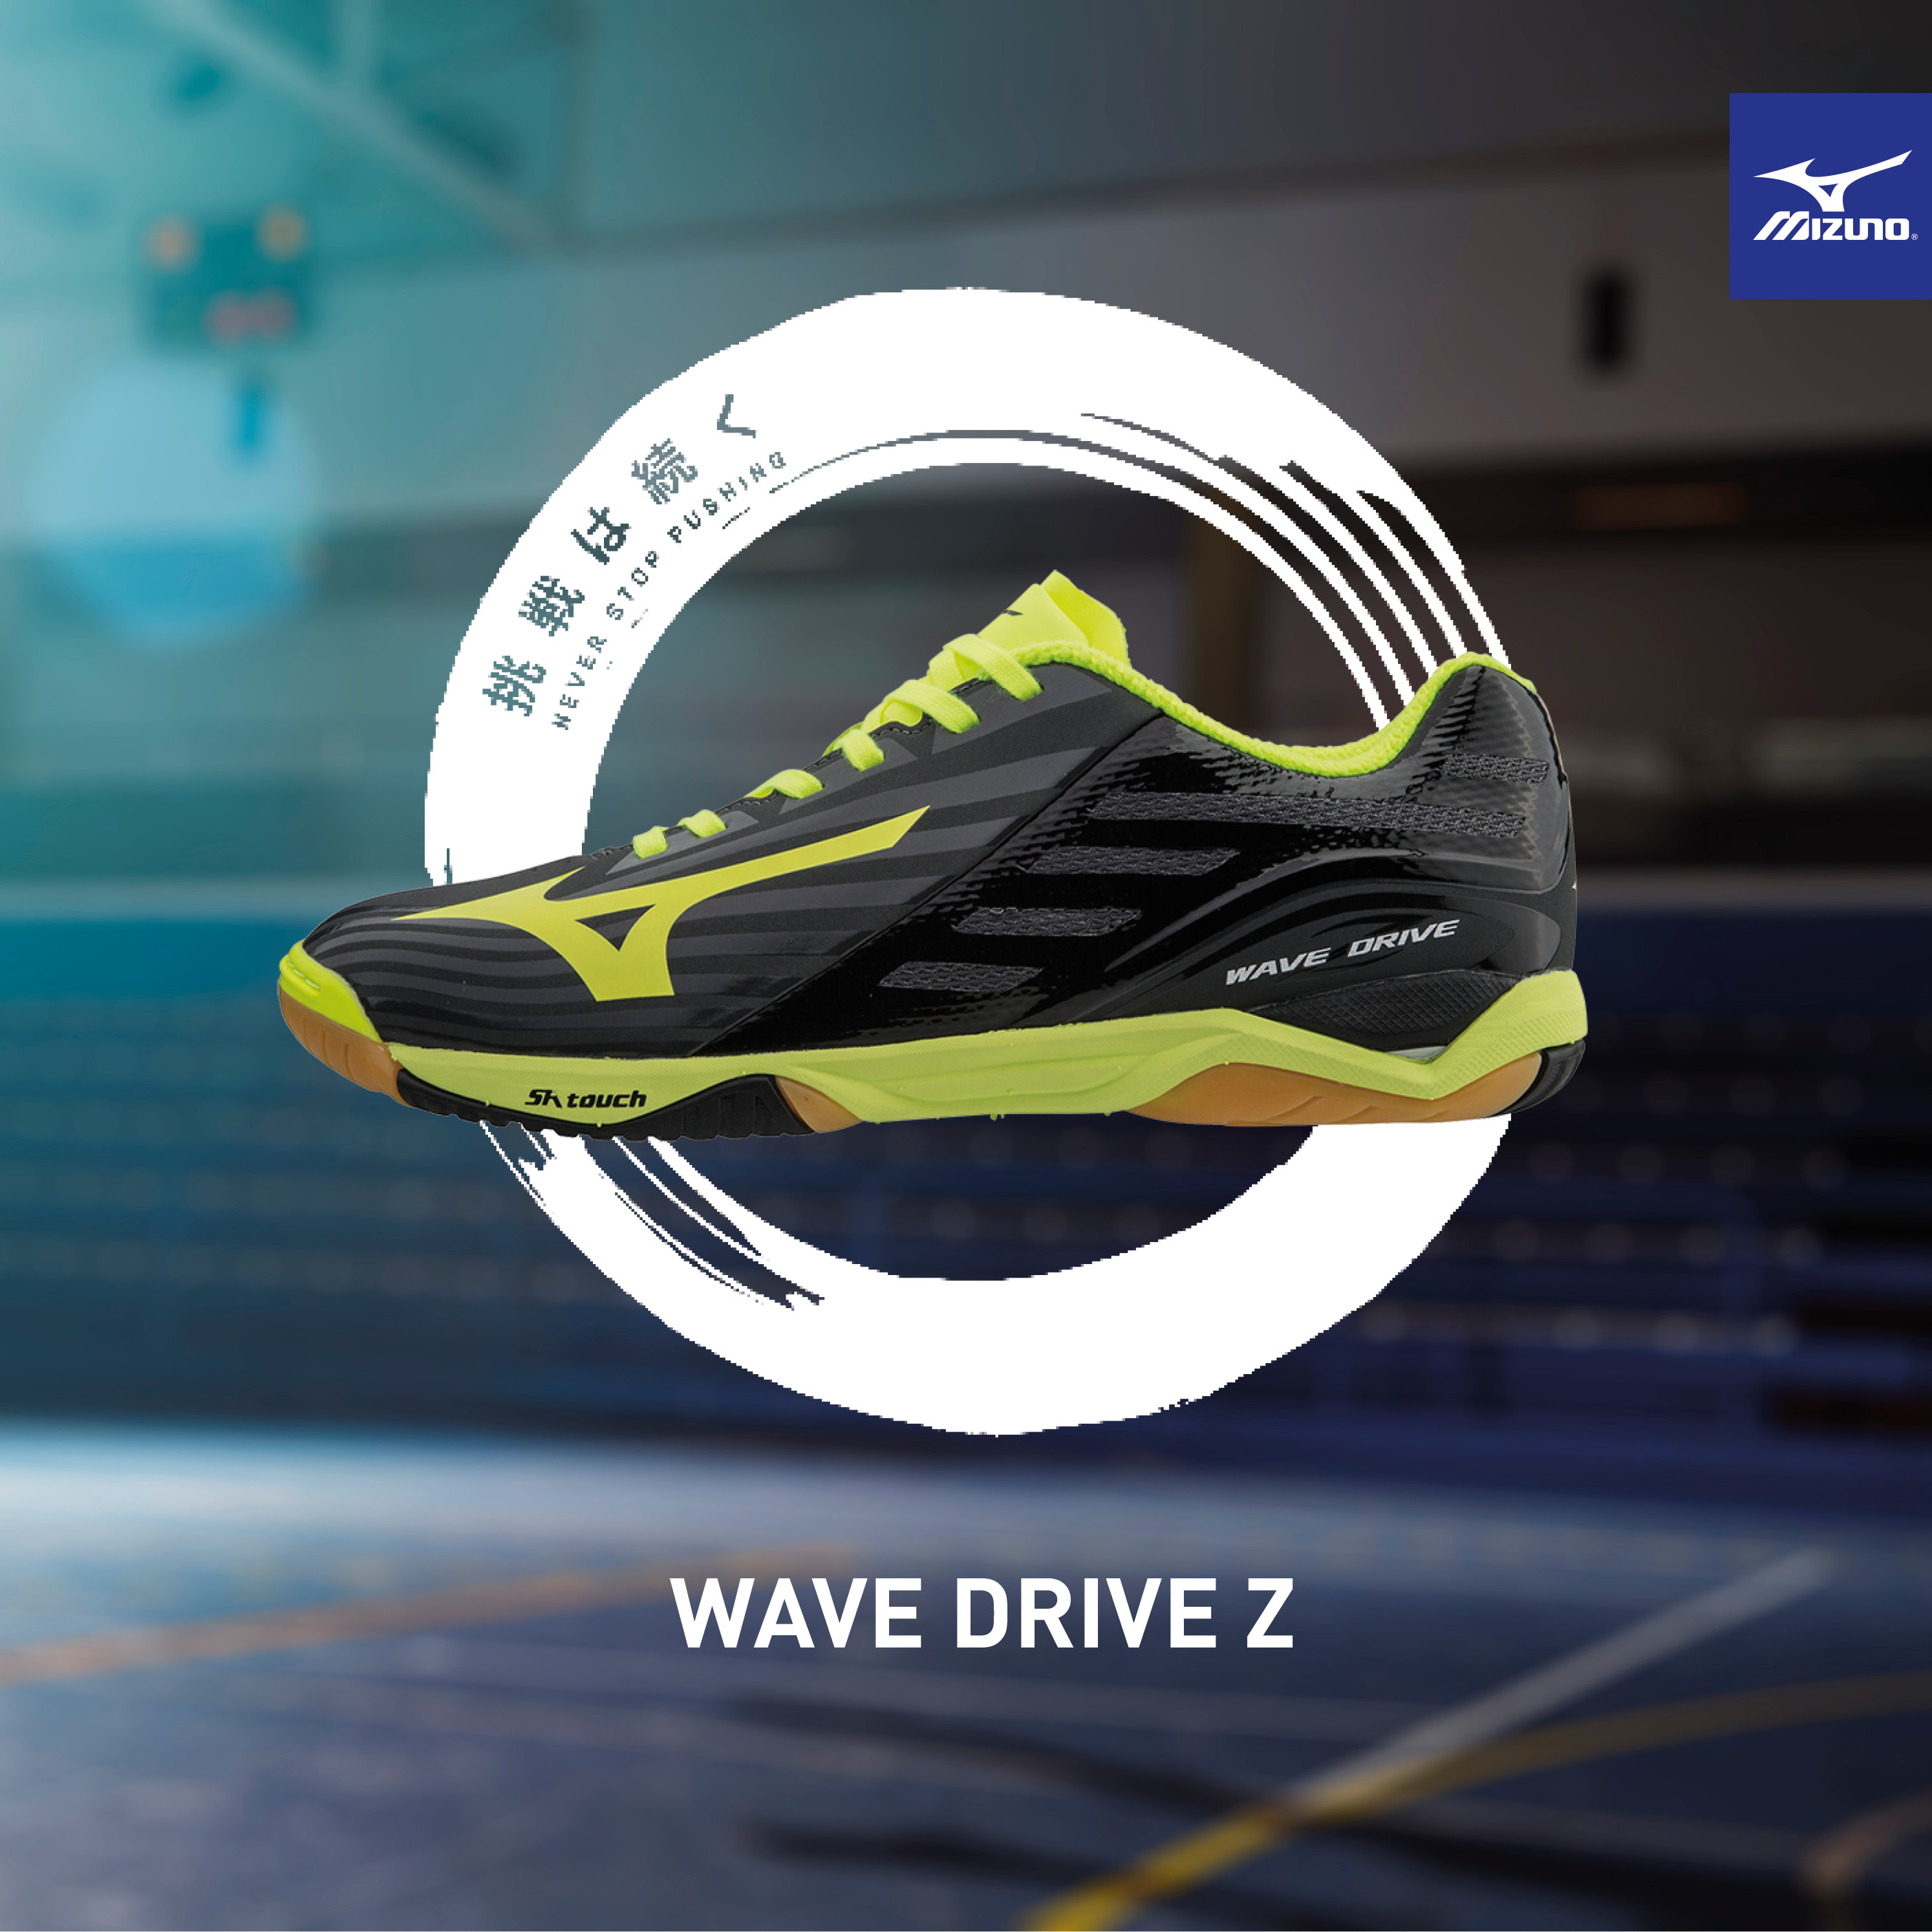 MIZUNO WAVE DRIVE Z TABLE TENNIS SHOES. A high quality Table Tennis shoe ... 998b5c93db8